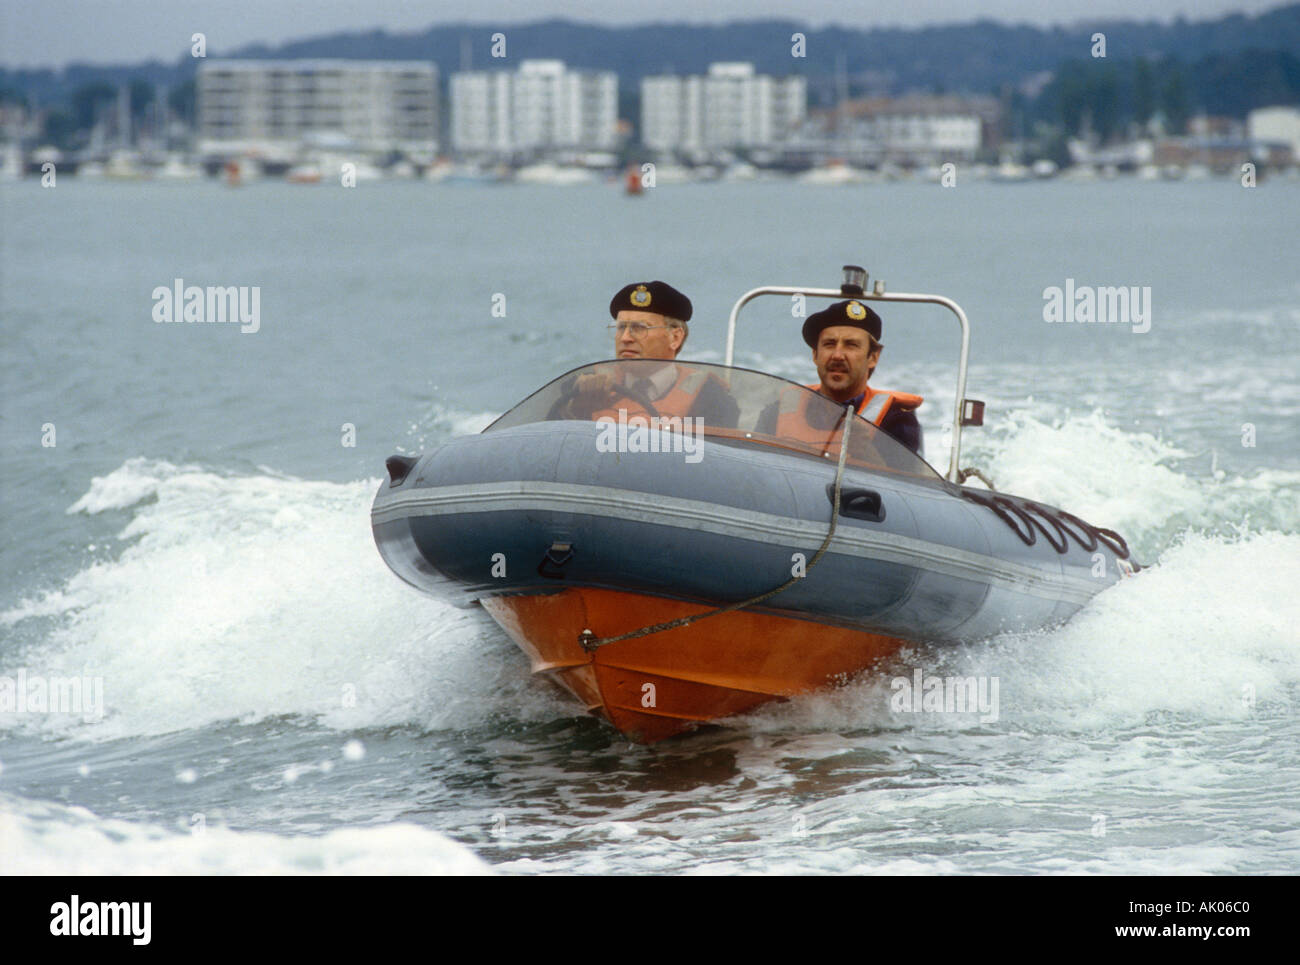 Customs and Excise officers on patrol in an Avon Sea Rider